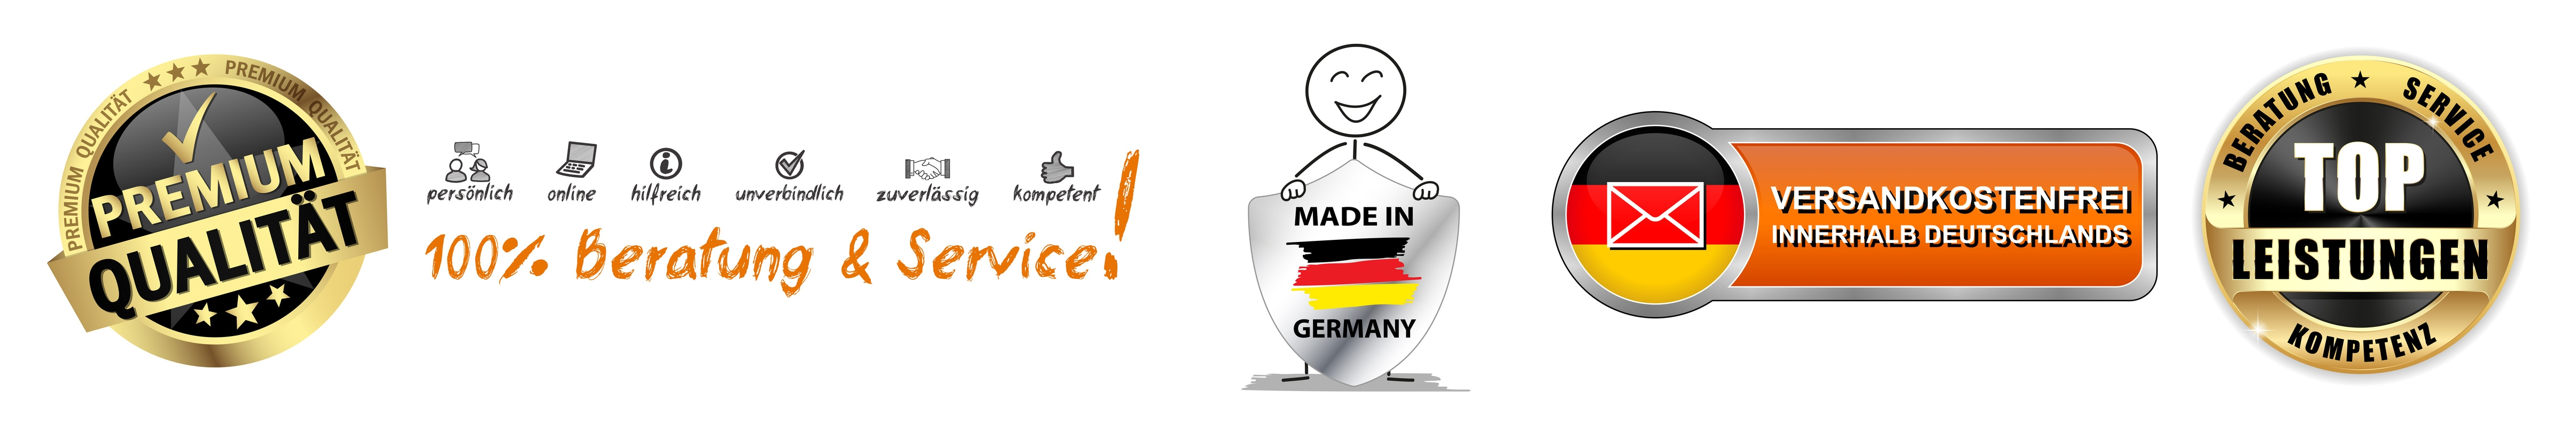 Kompetenz-und-Service-markisen-made-in-germany-onlineshop